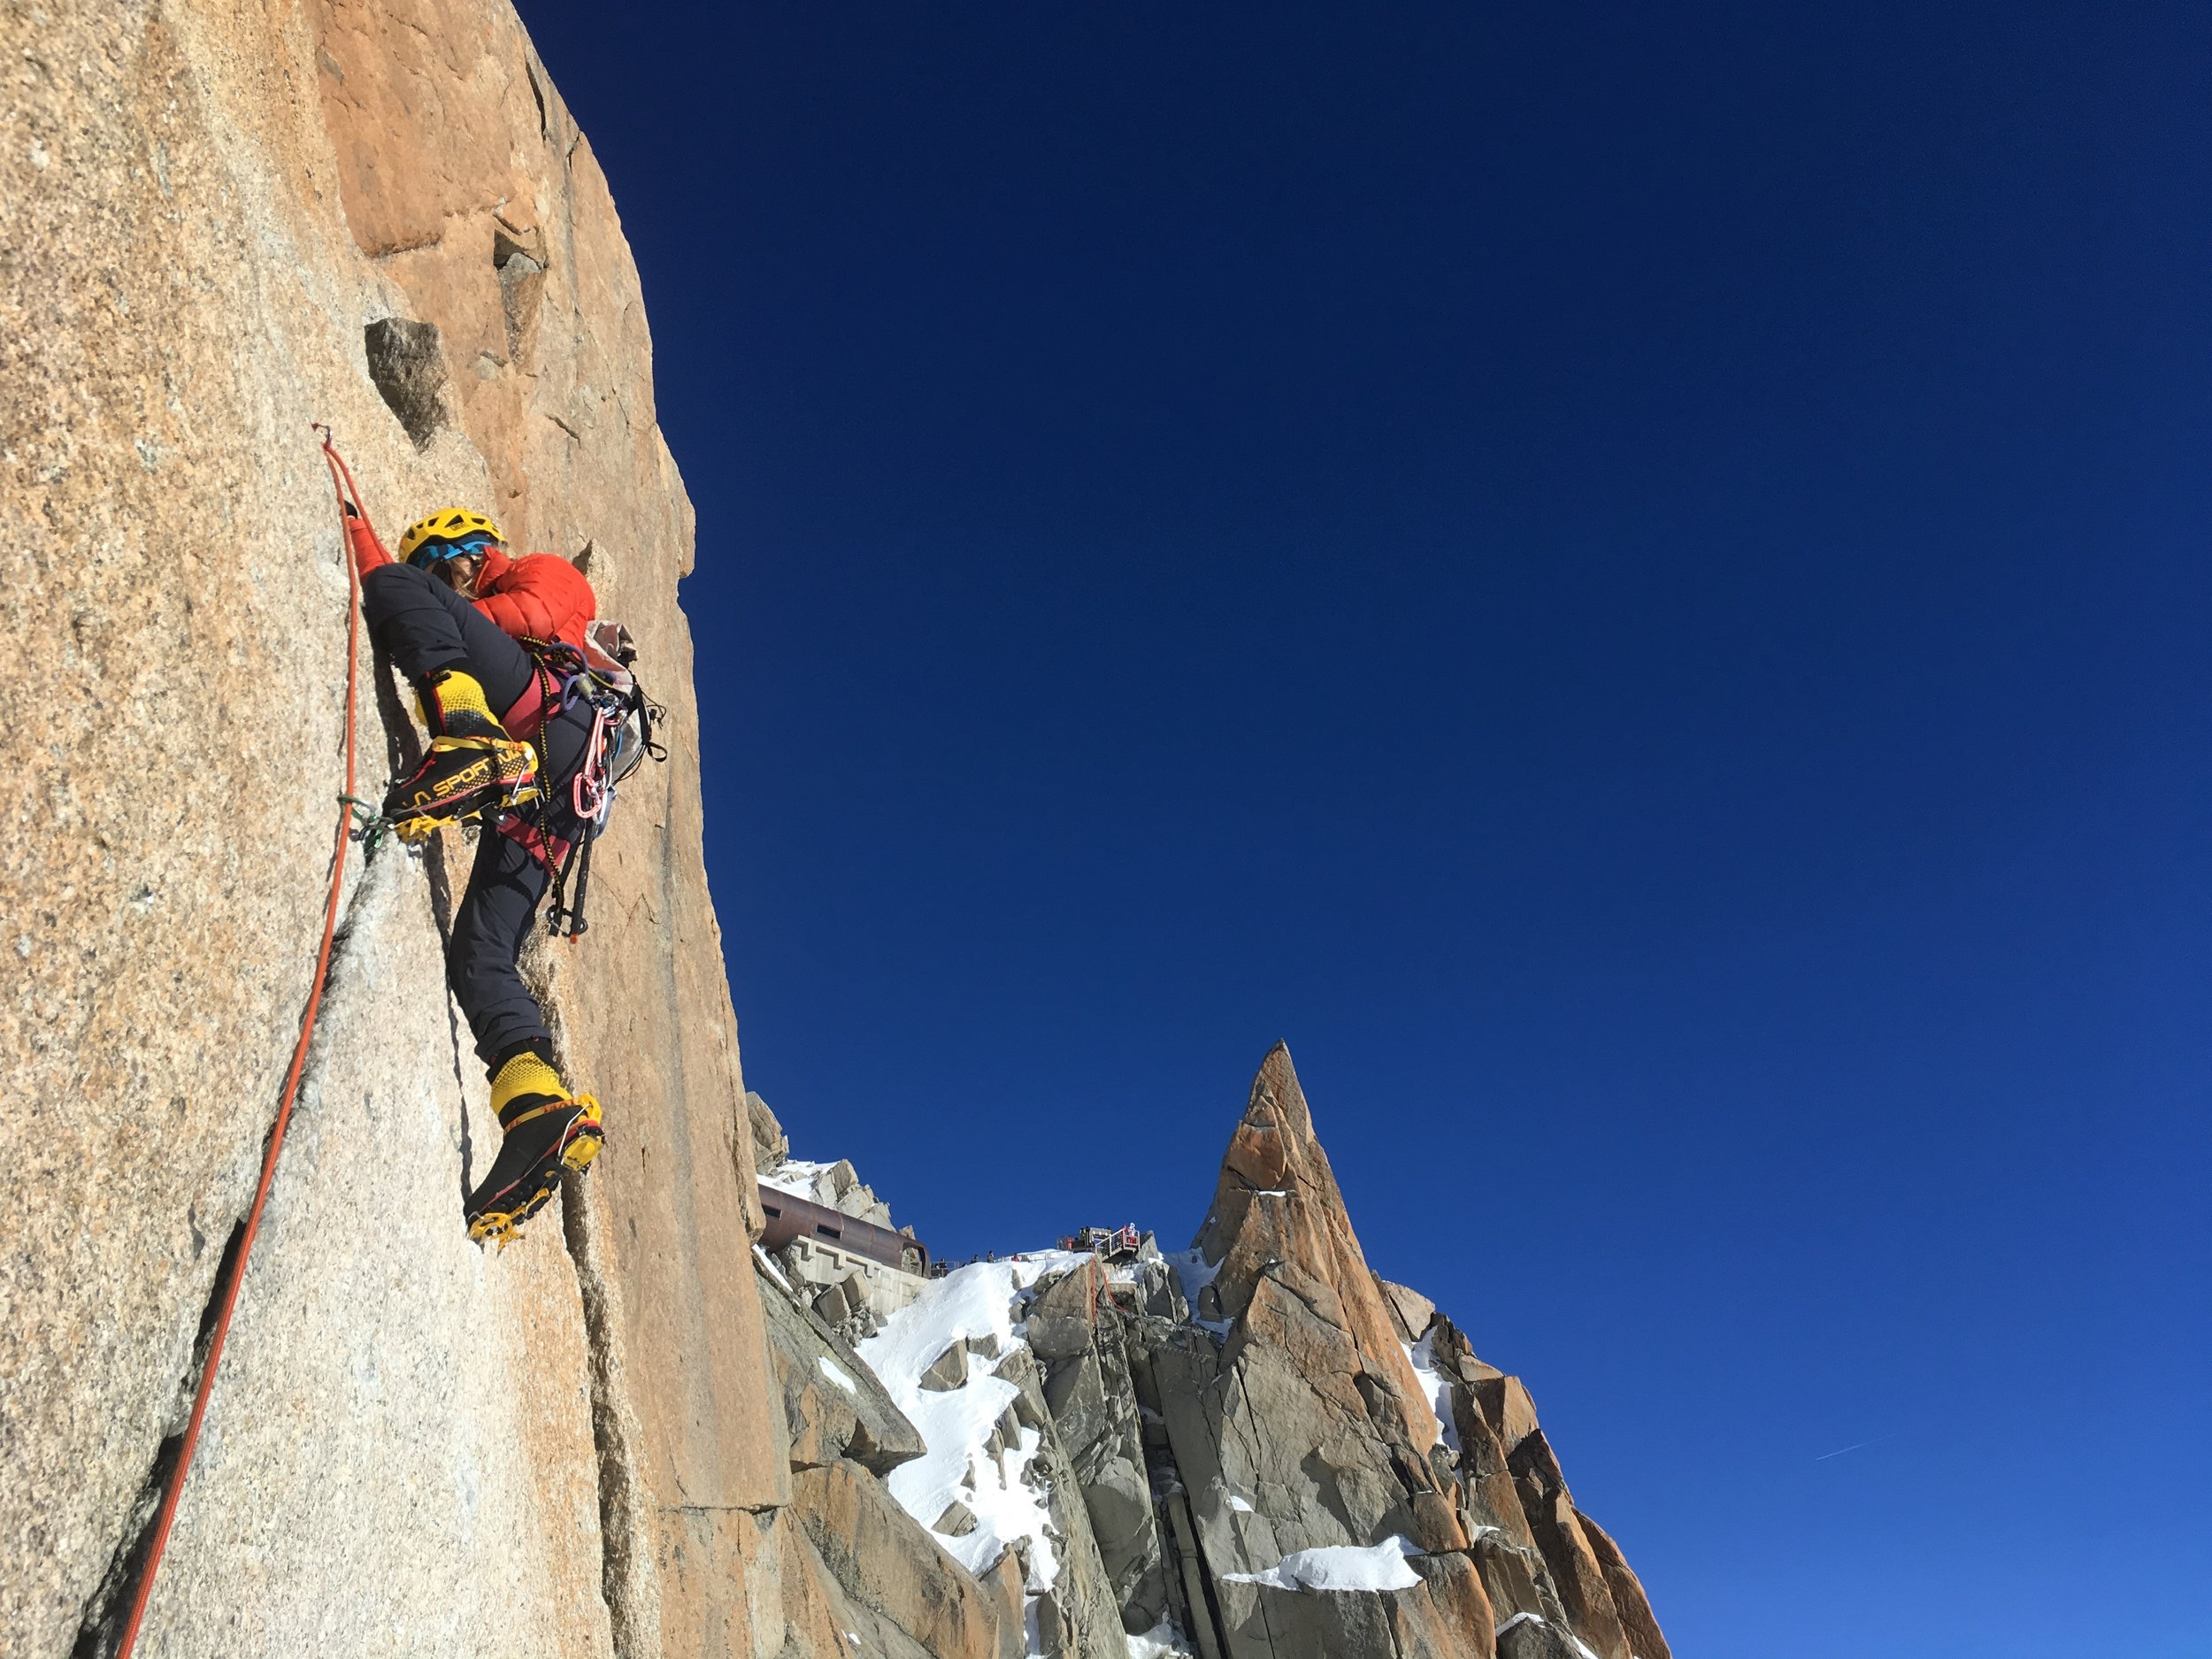 Goofing off on the cosmic arete!